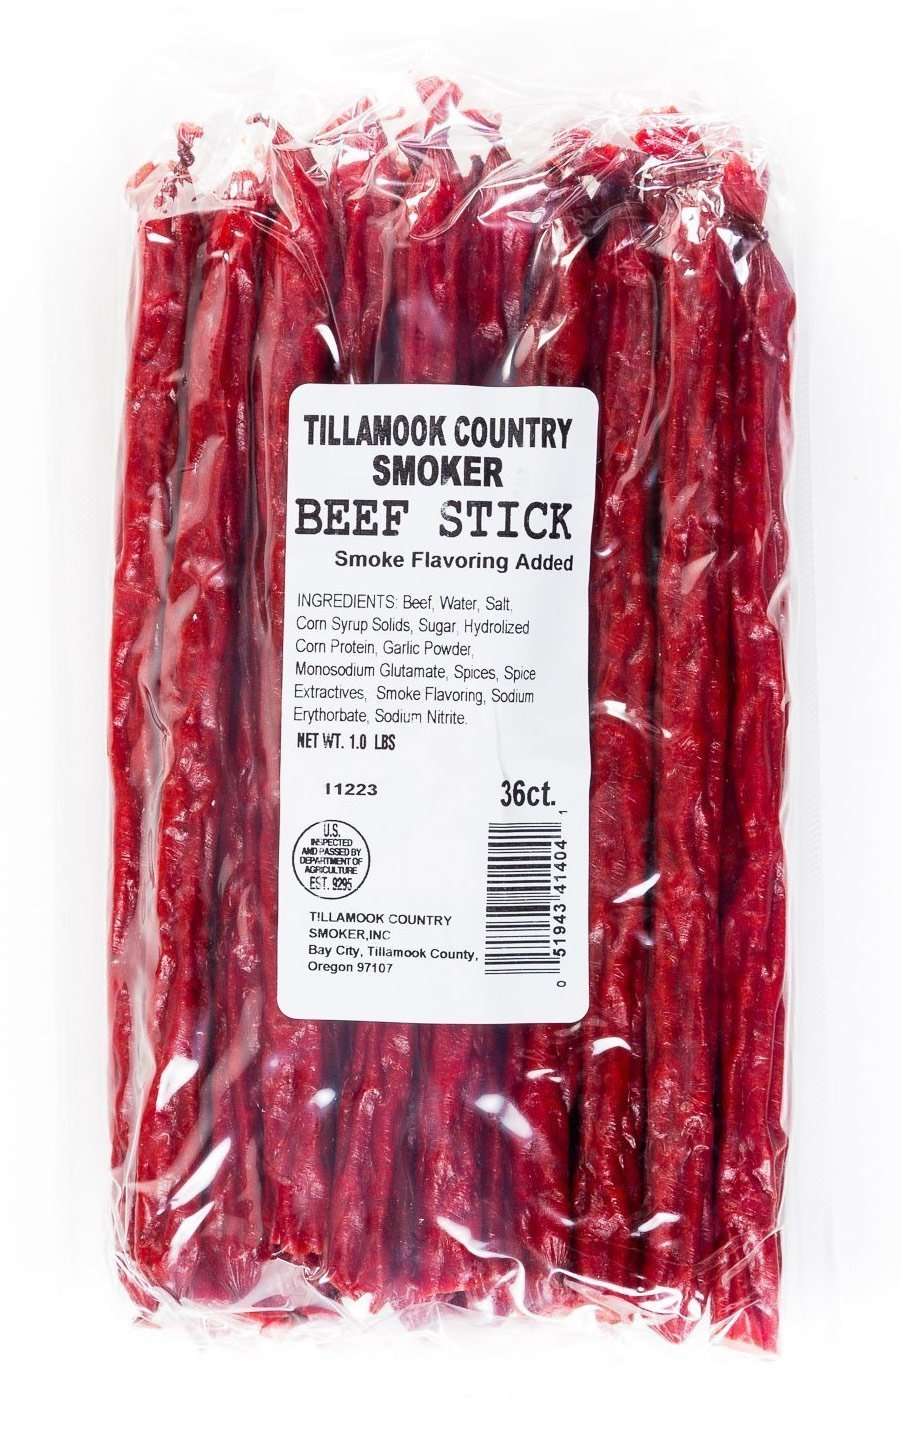 Tillamook Country Smoker - Beef Stick 36 ct Bulk Retail Refill 0.9-1 lbs Beef Jerky Sausage Stick Meat Snack Camping Hiking